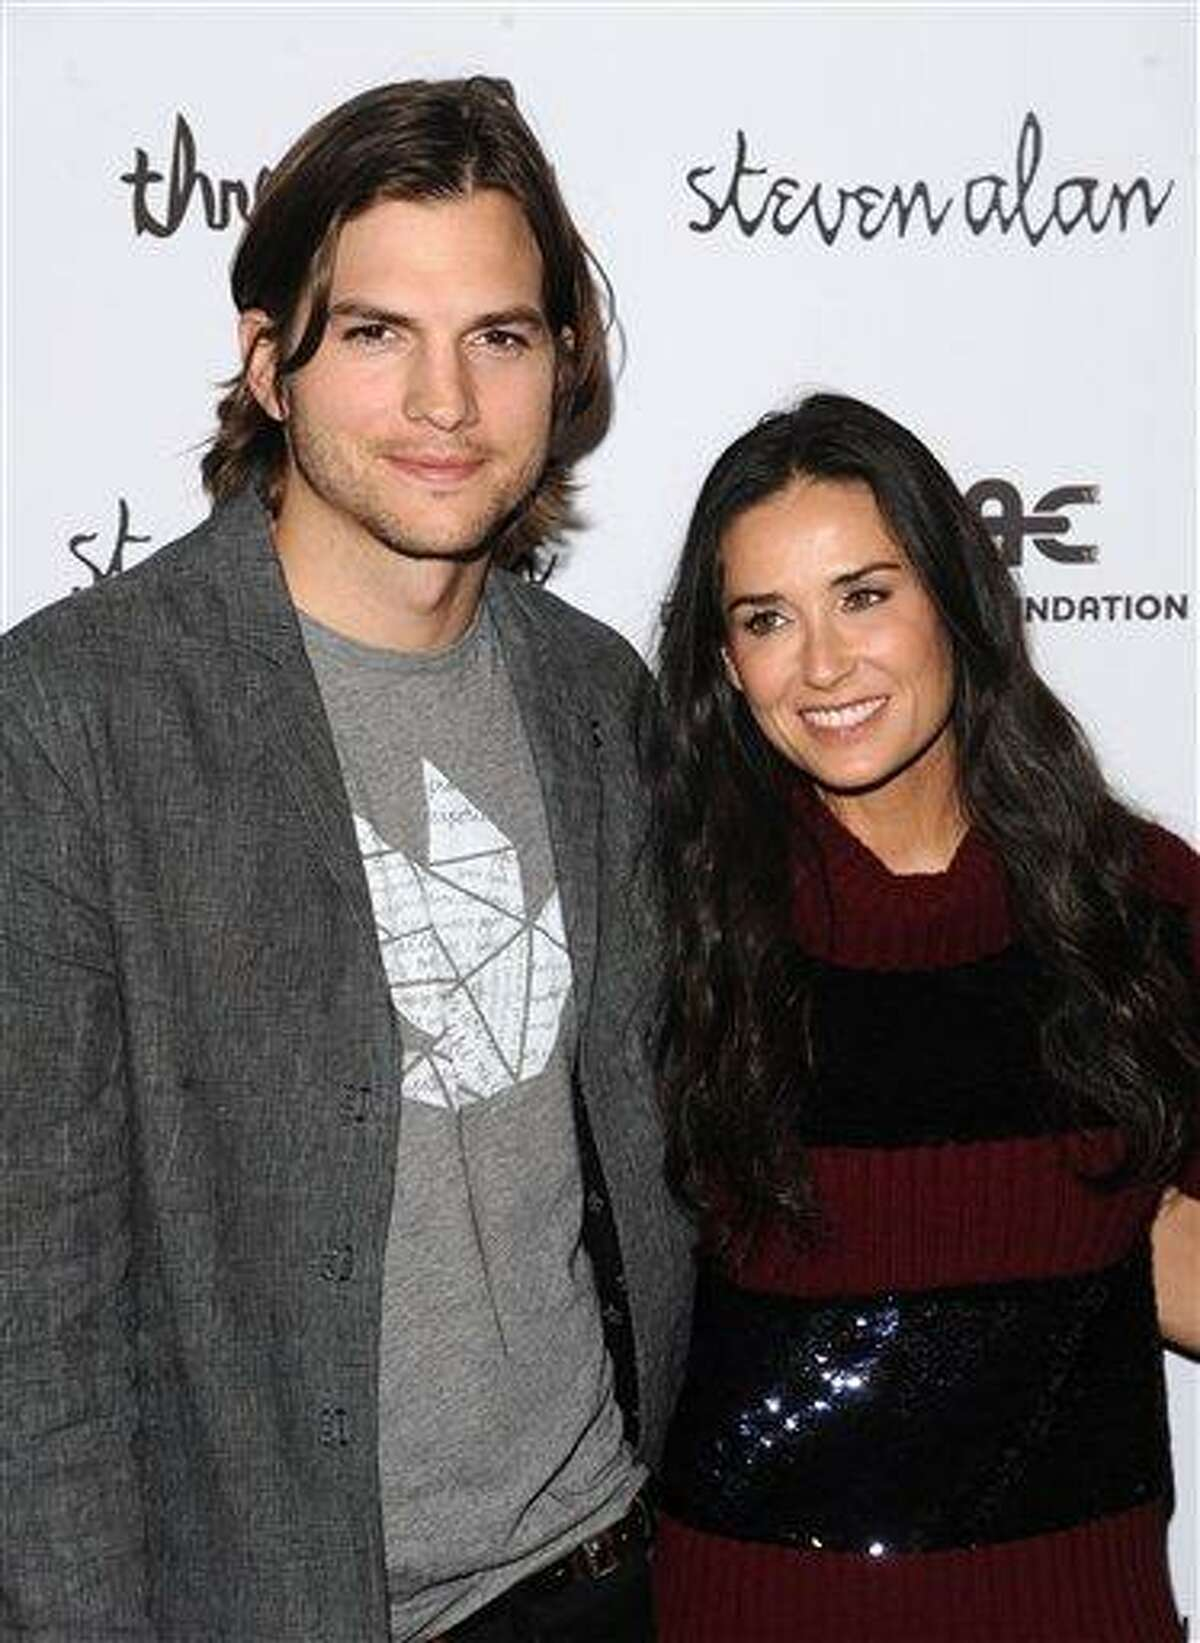 FILE - In this April 14, 2011 file photo, Ashton Kutcher and Demi Moore attend the